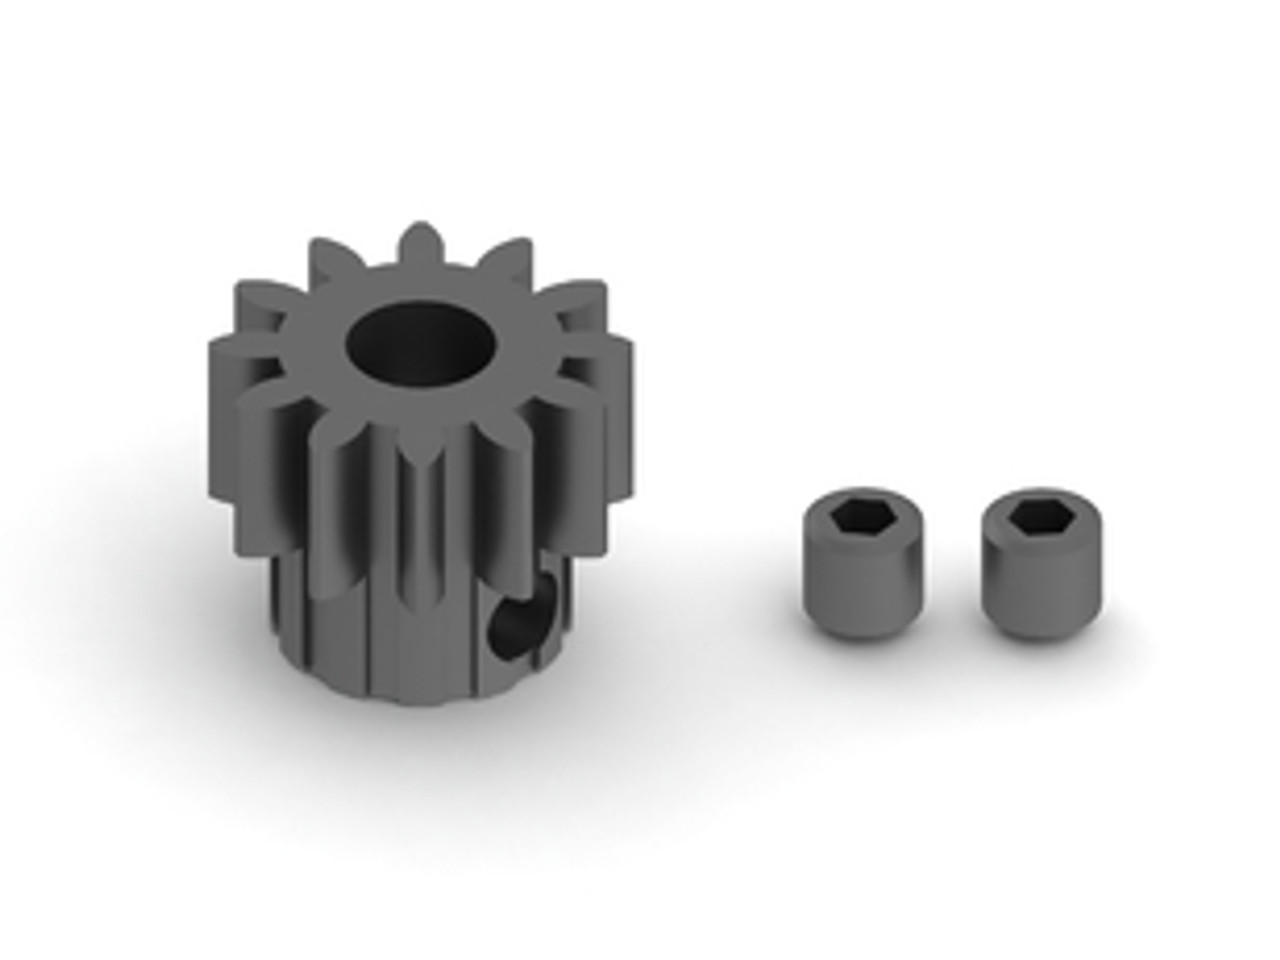 12T MOD1 PINION GEAR (1PC)